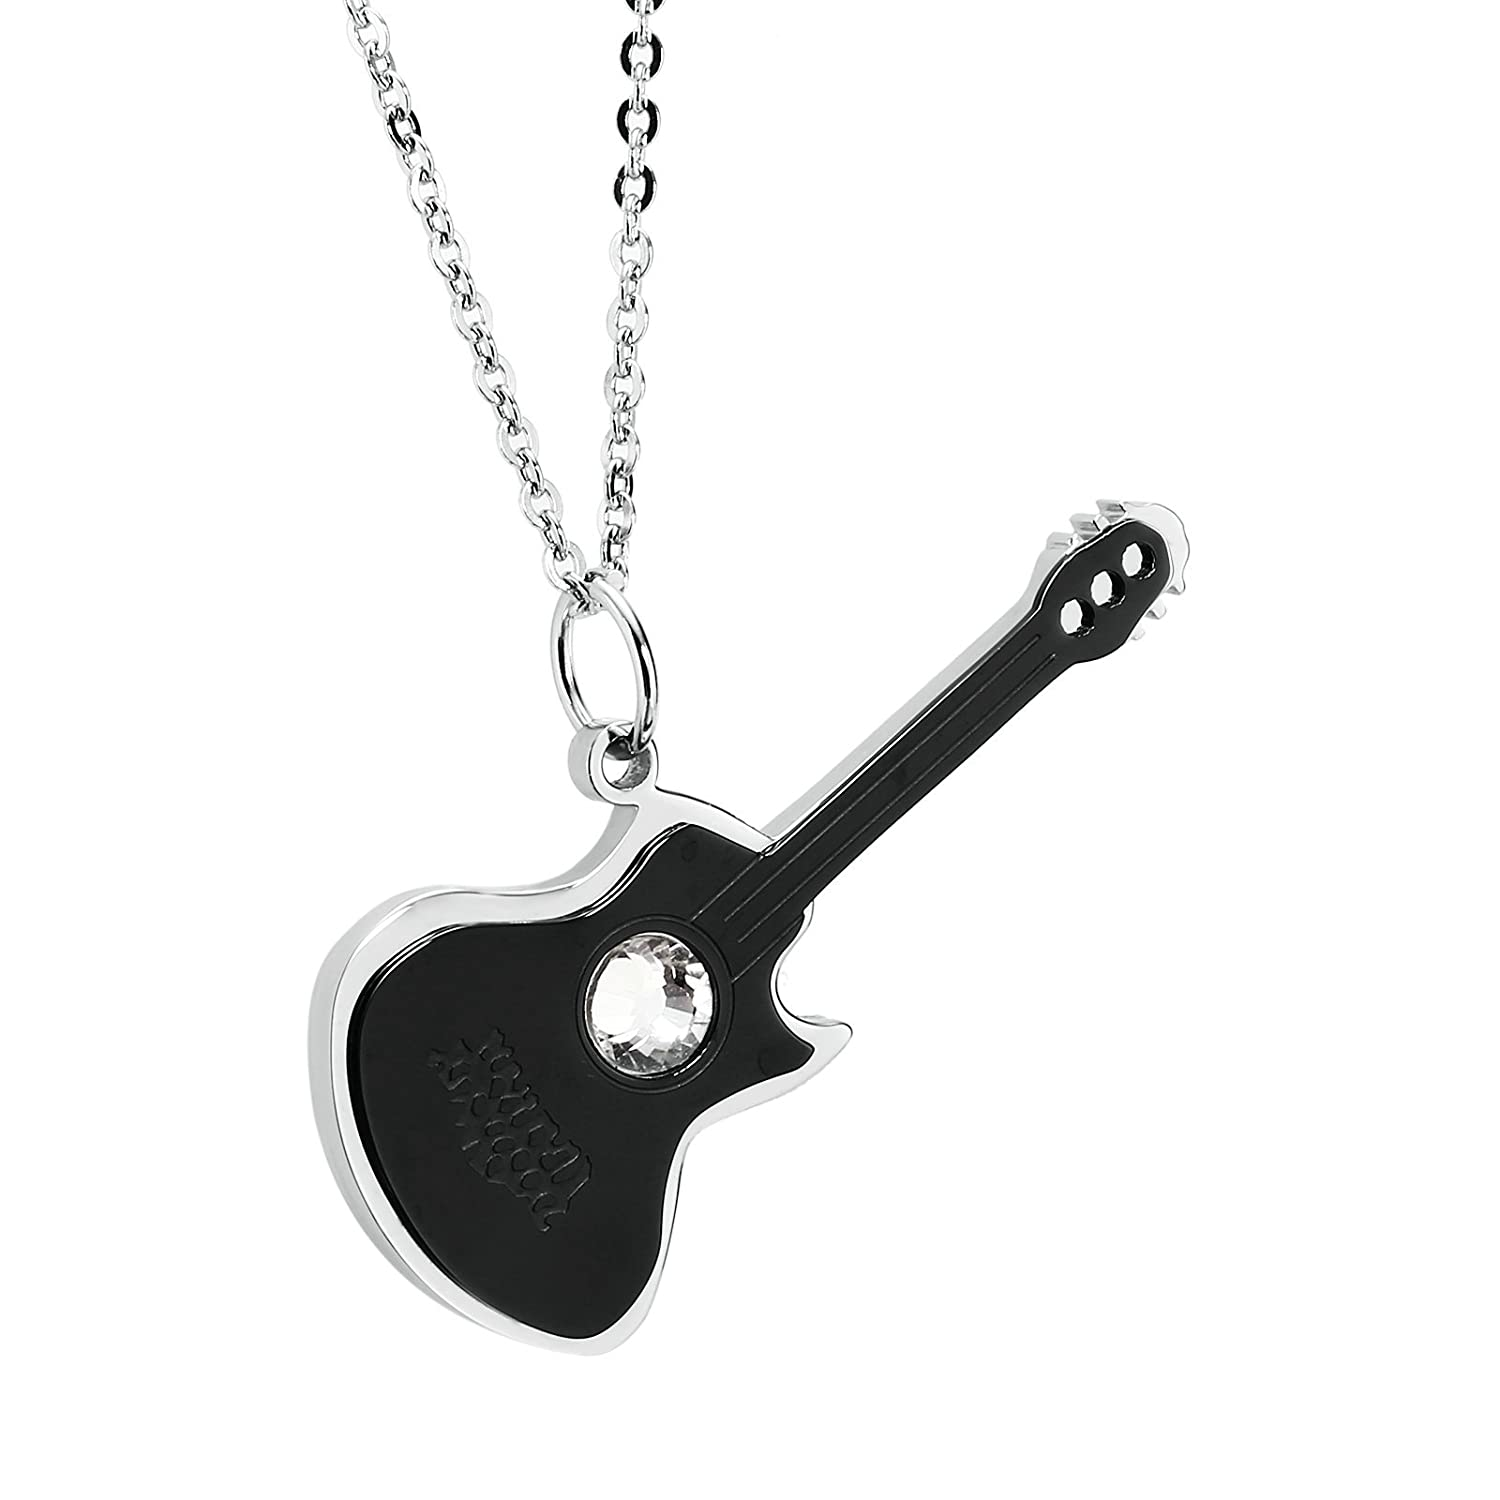 Adisaer His and Hers Stainless Steel Pendant Necklace Guitar Cubic Zirconia Pendant Size 2.7x4.8CM